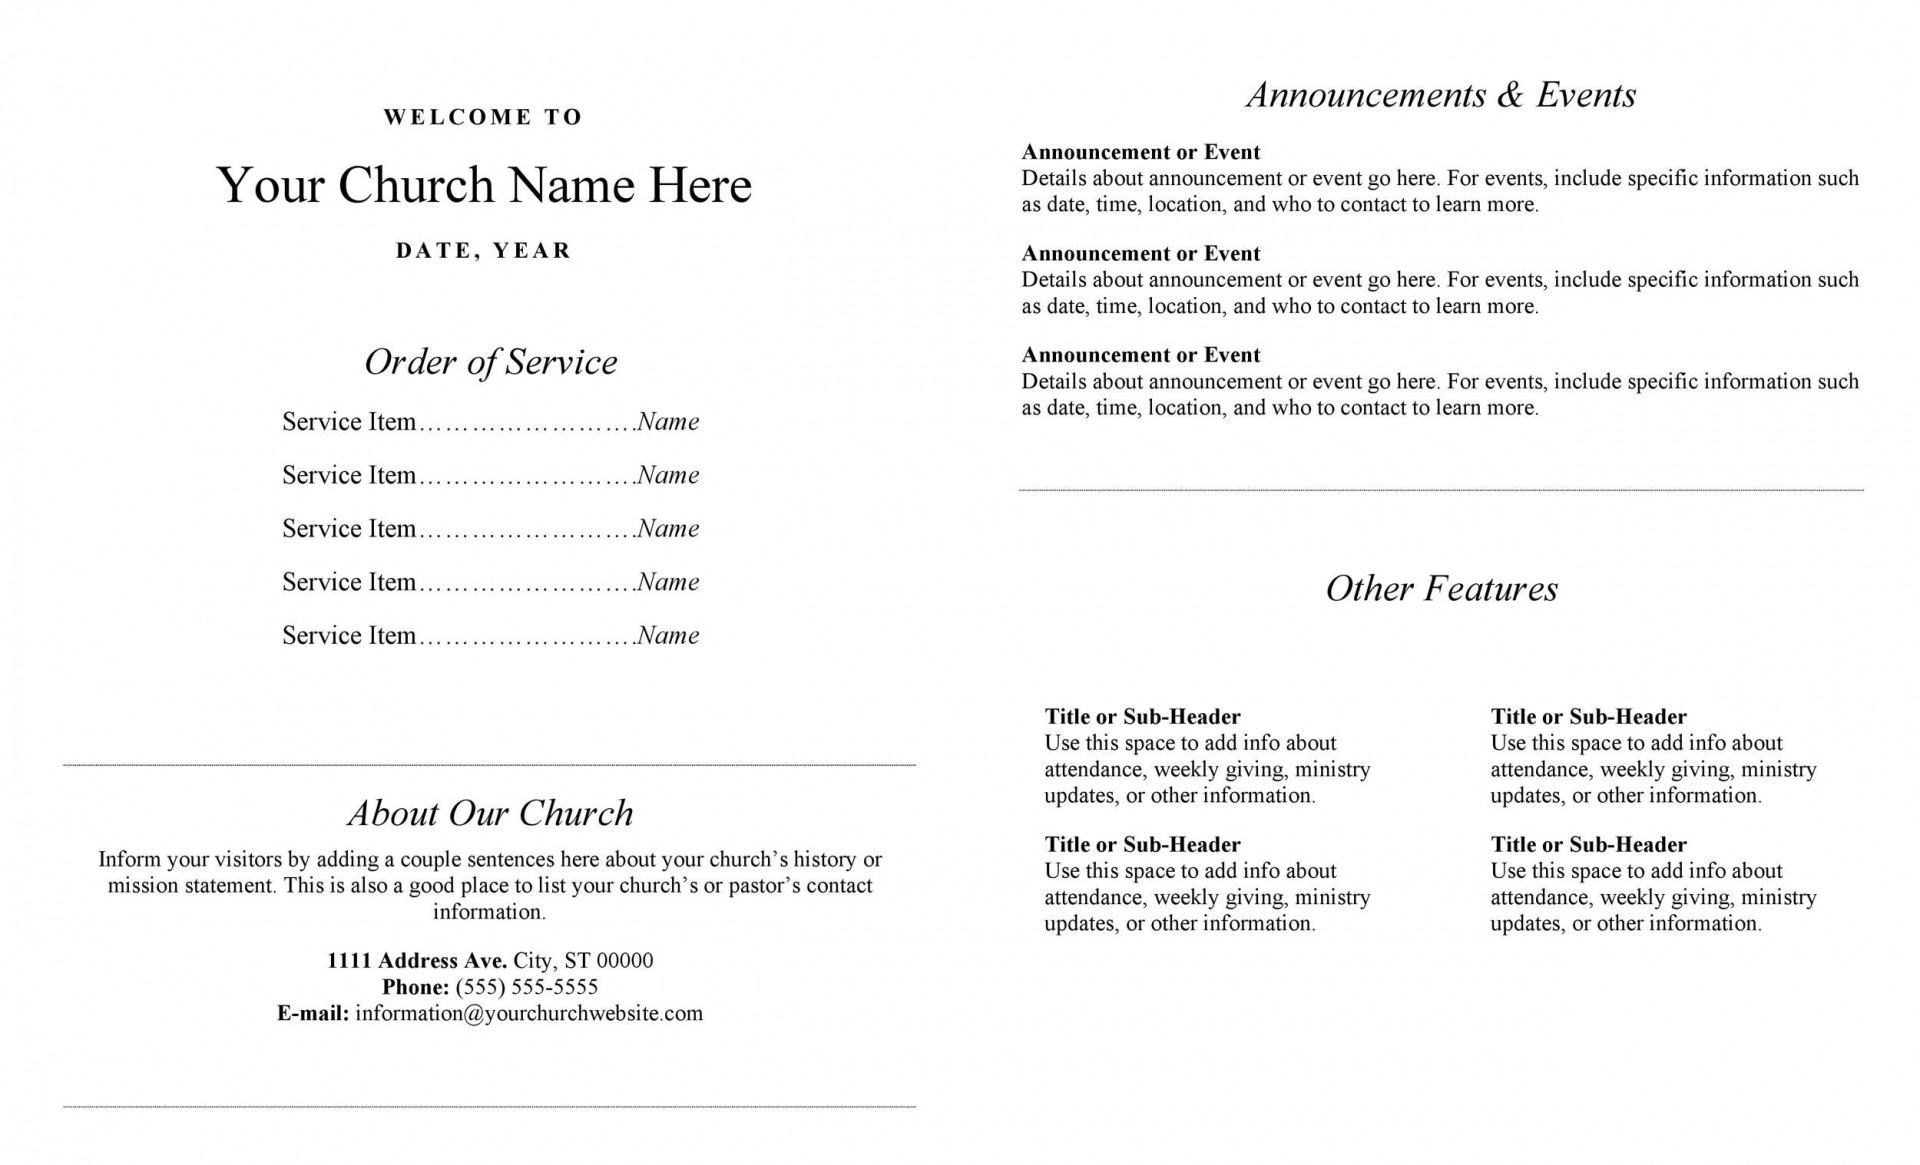 006 Impressive Free Church Program Template Design High Def 1920